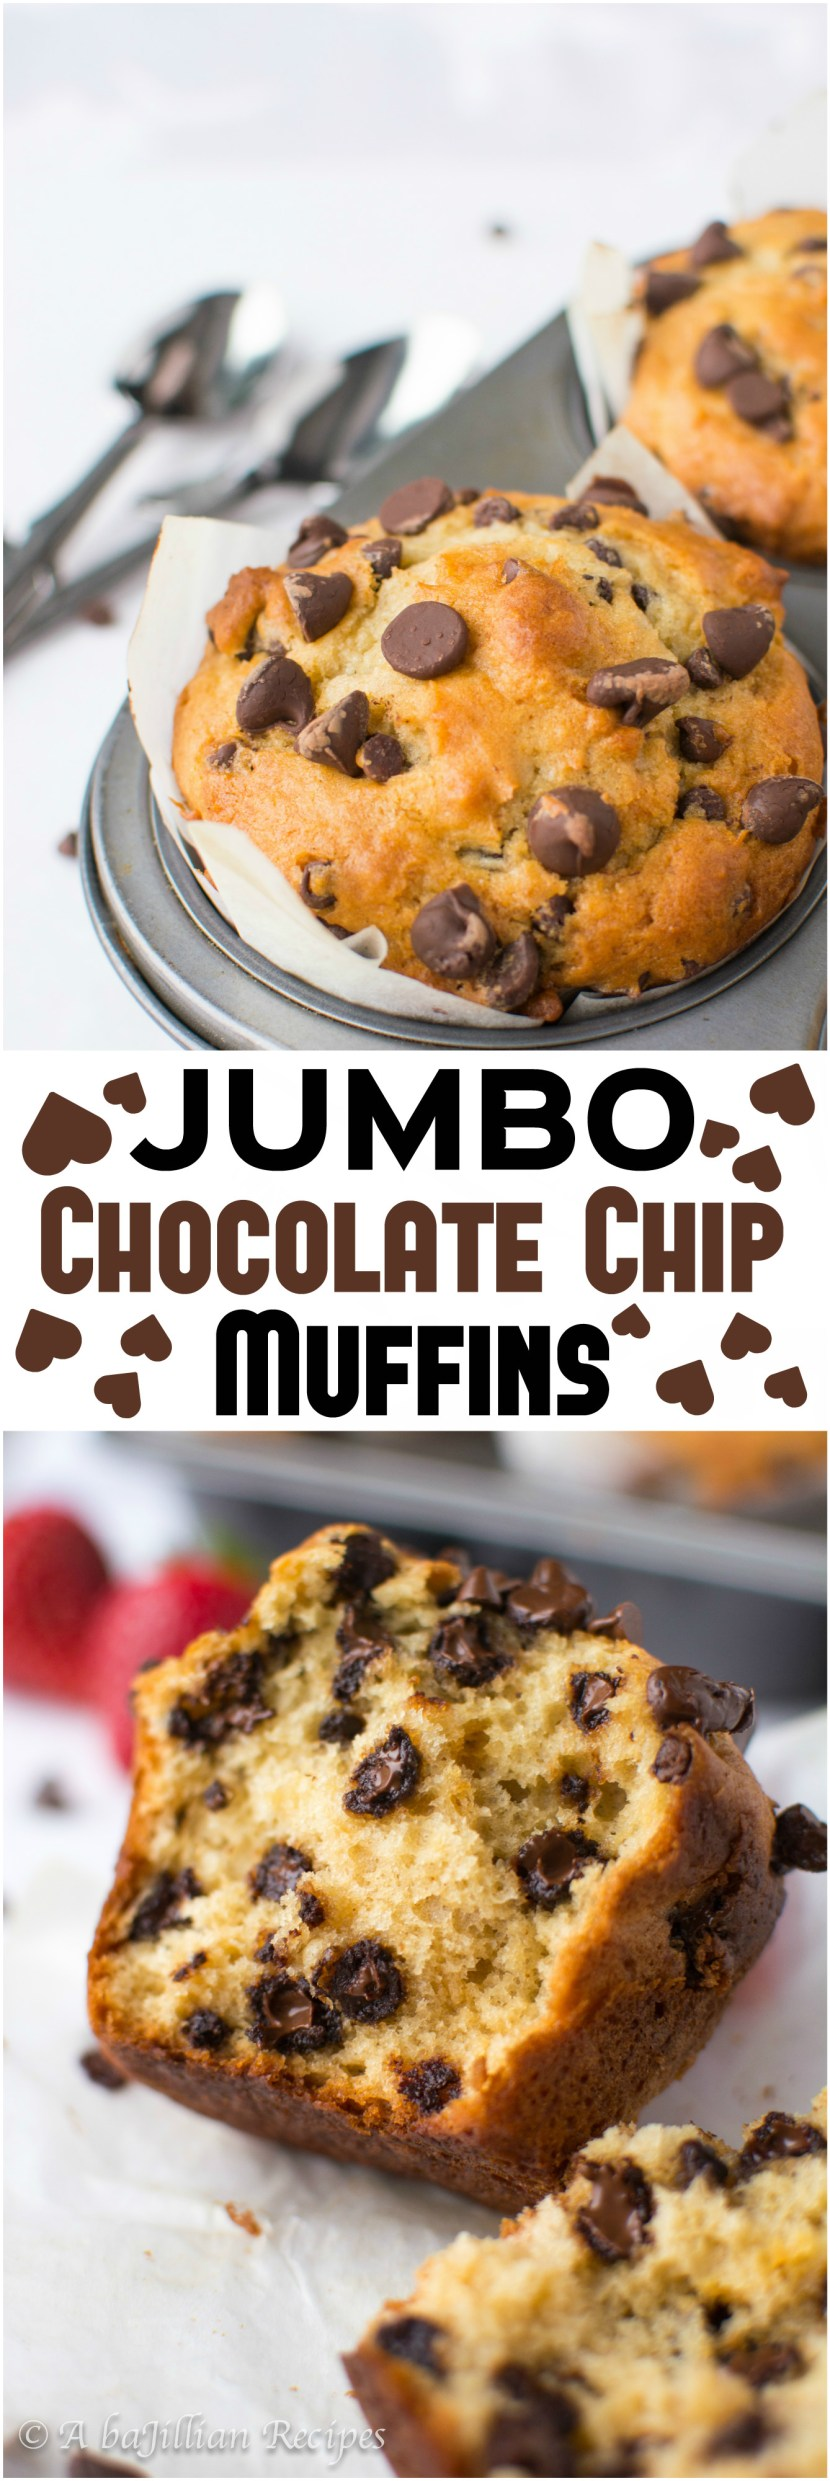 Jumbo-Chocolate-Chip-Muffins-abajillianrecipes